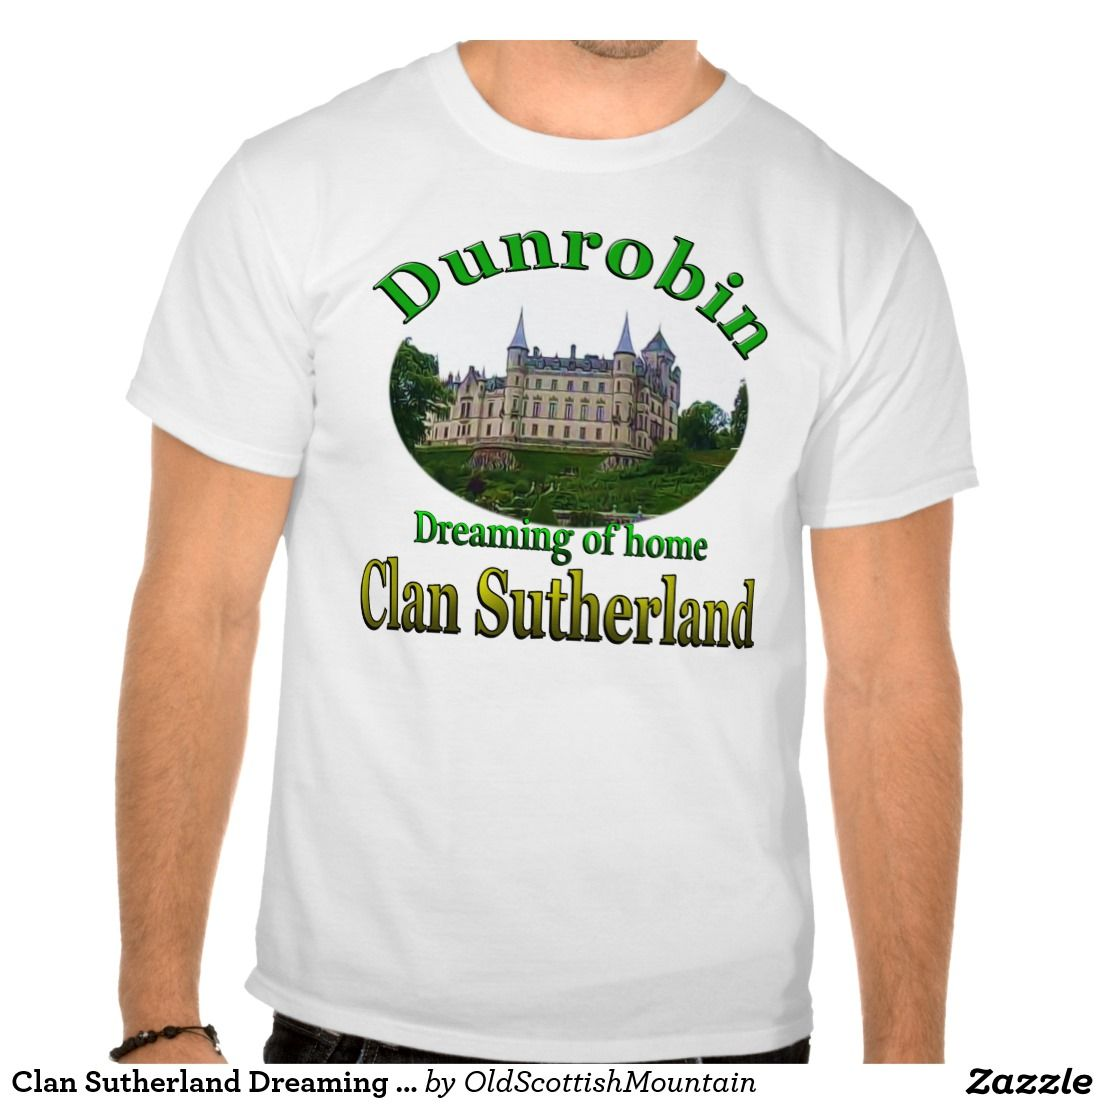 Clan Sutherland Dreaming of Home Dunrobin Castle TShirt